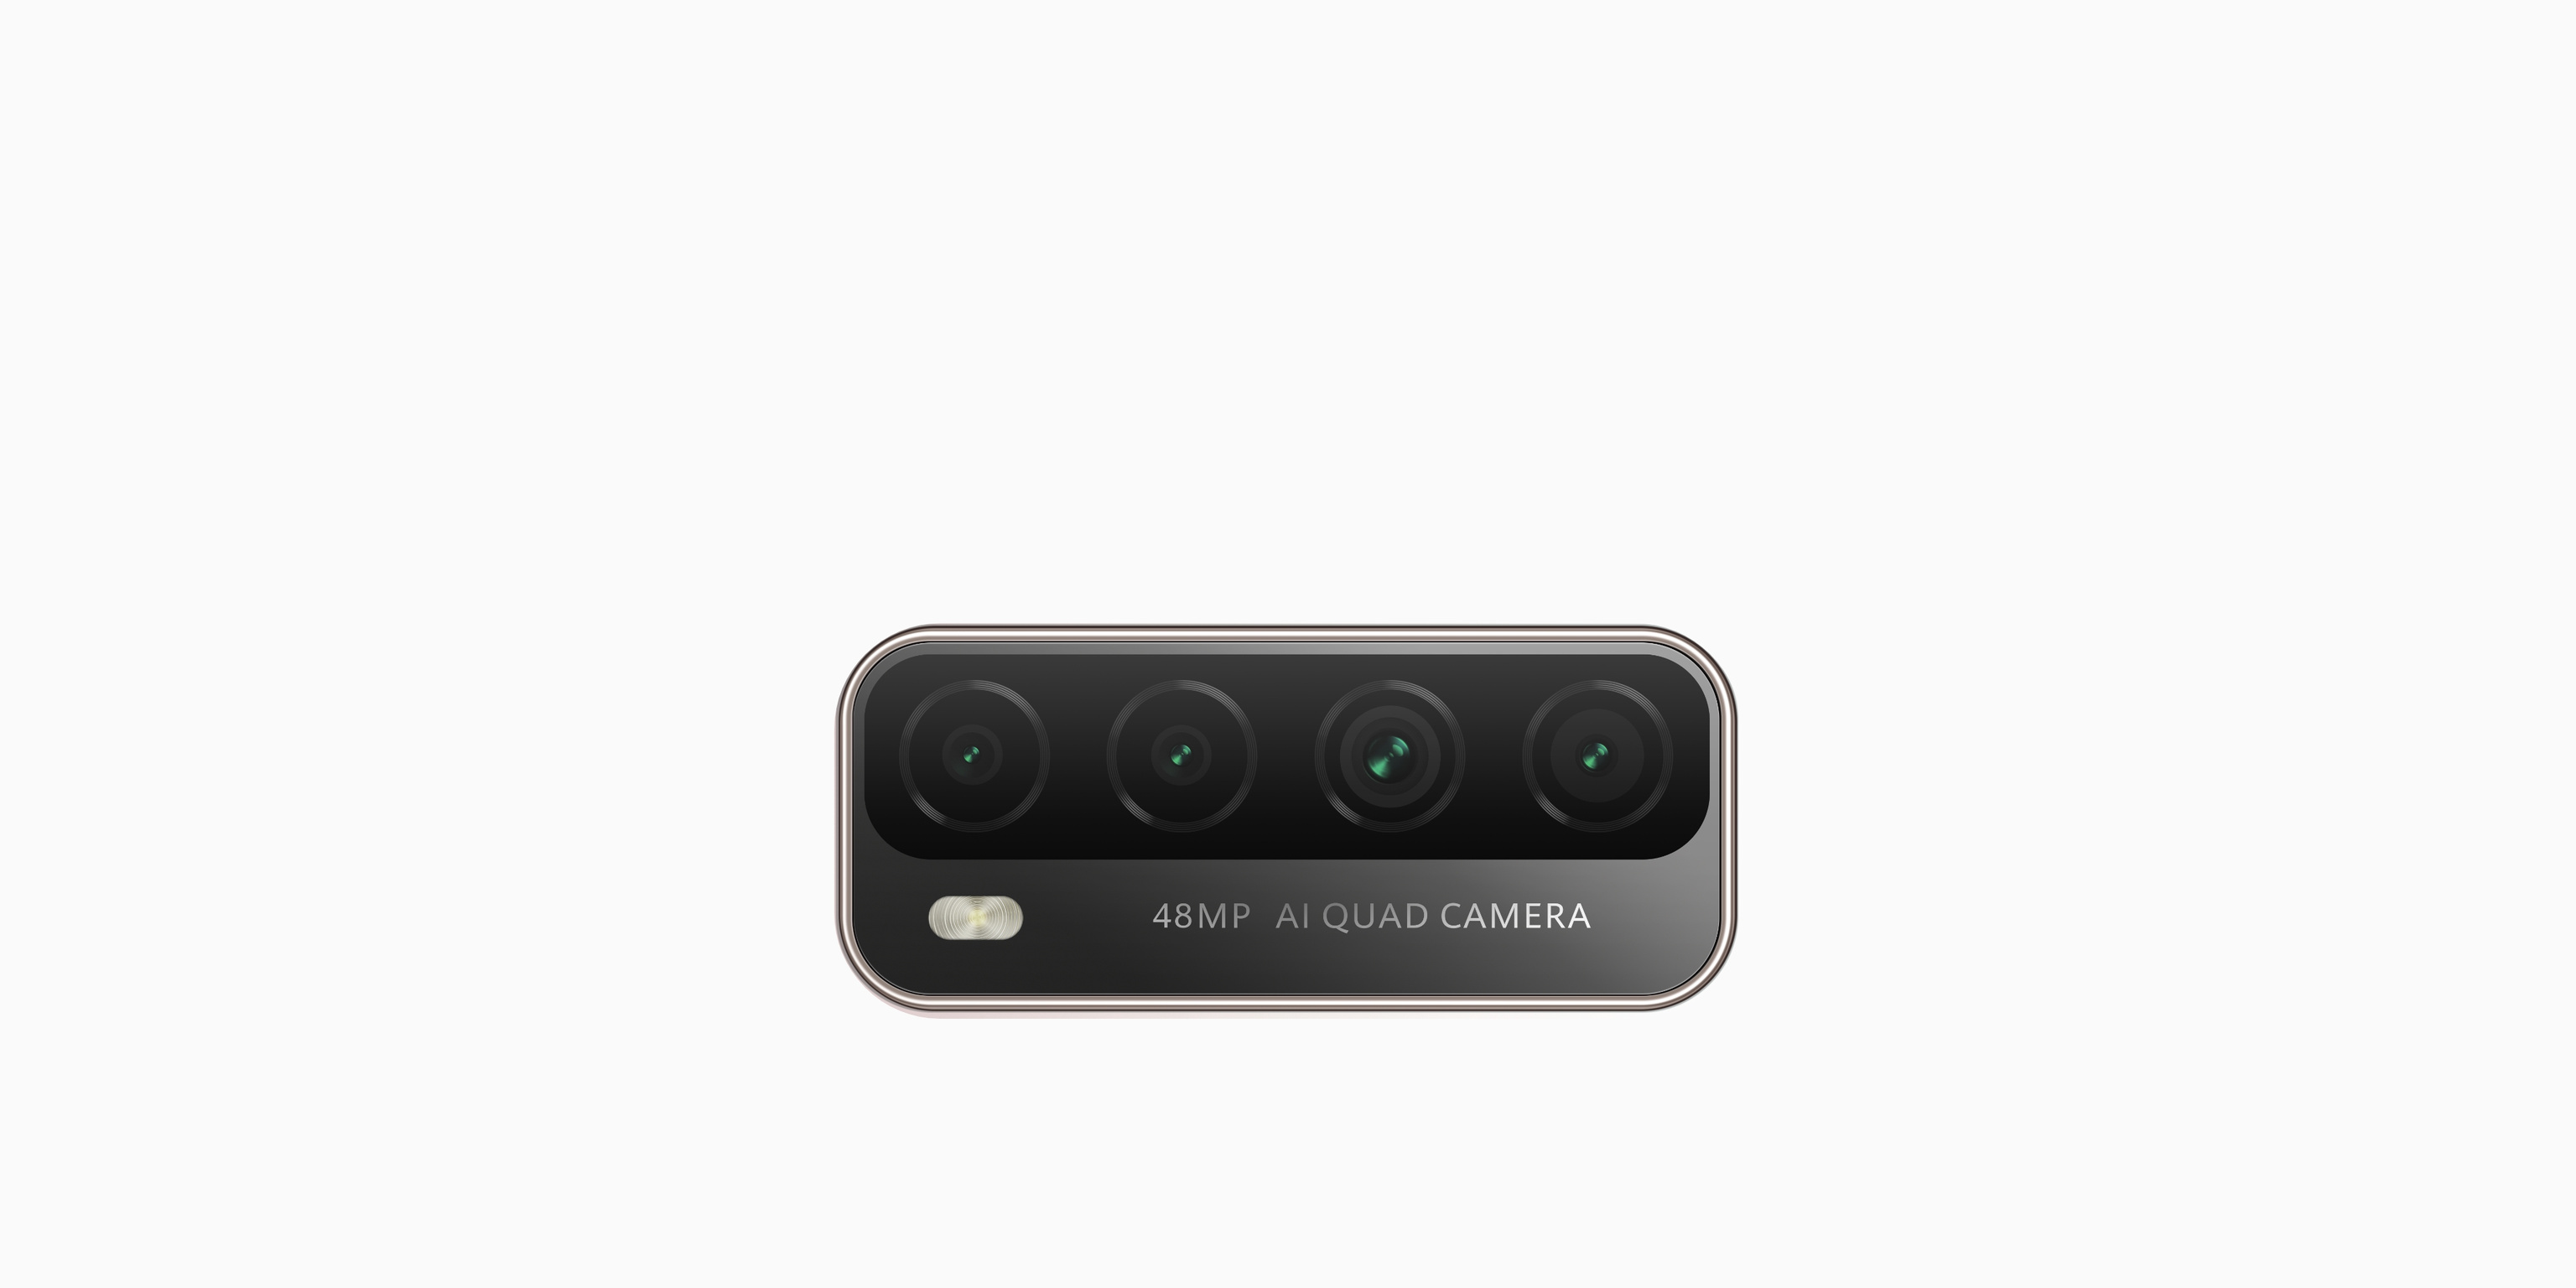 HUAWEI P smart 2021 Quad AI Camera